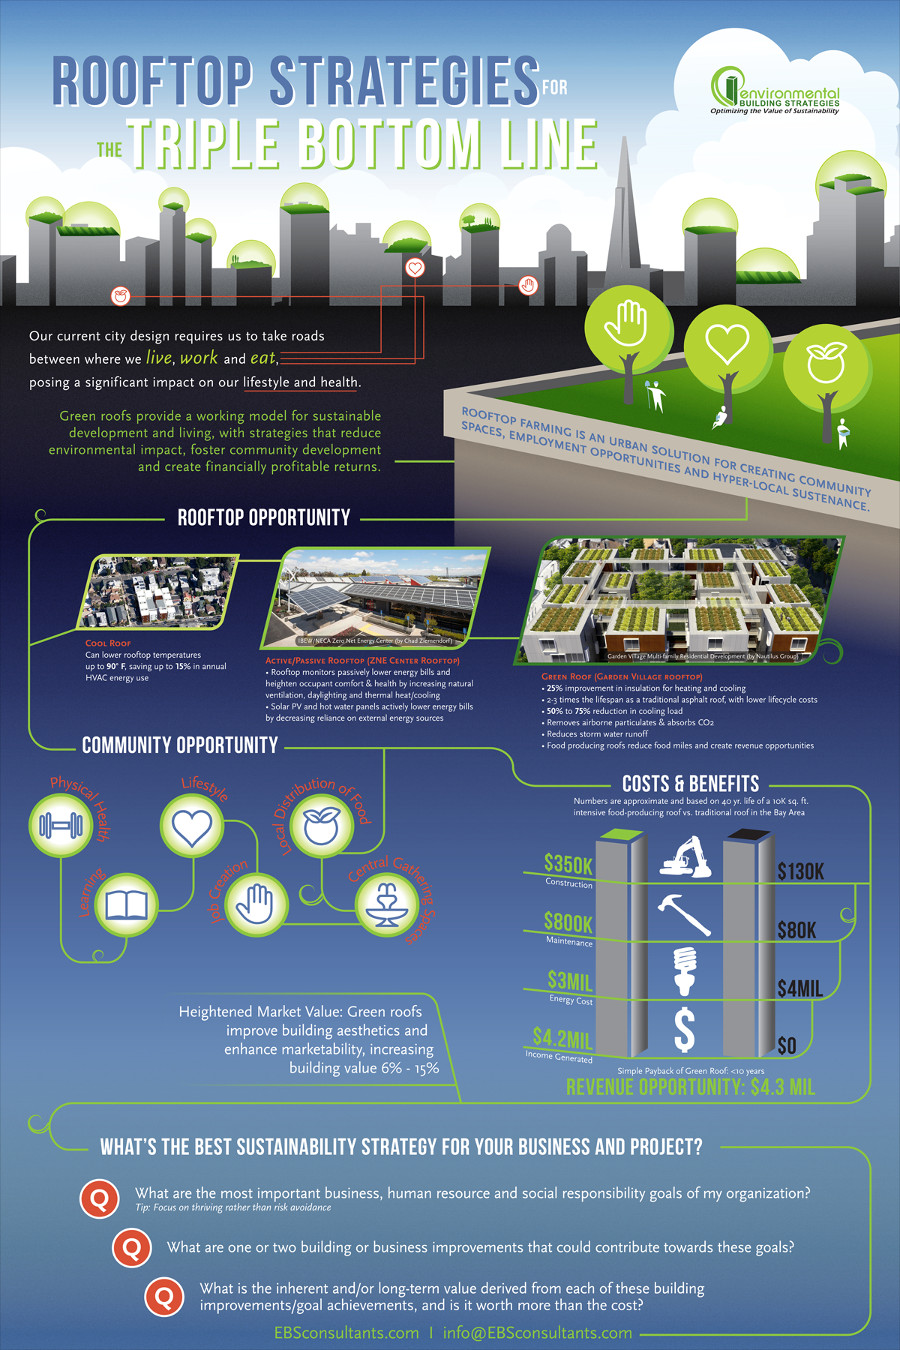 Ebs Green Roof Costs And Benefits